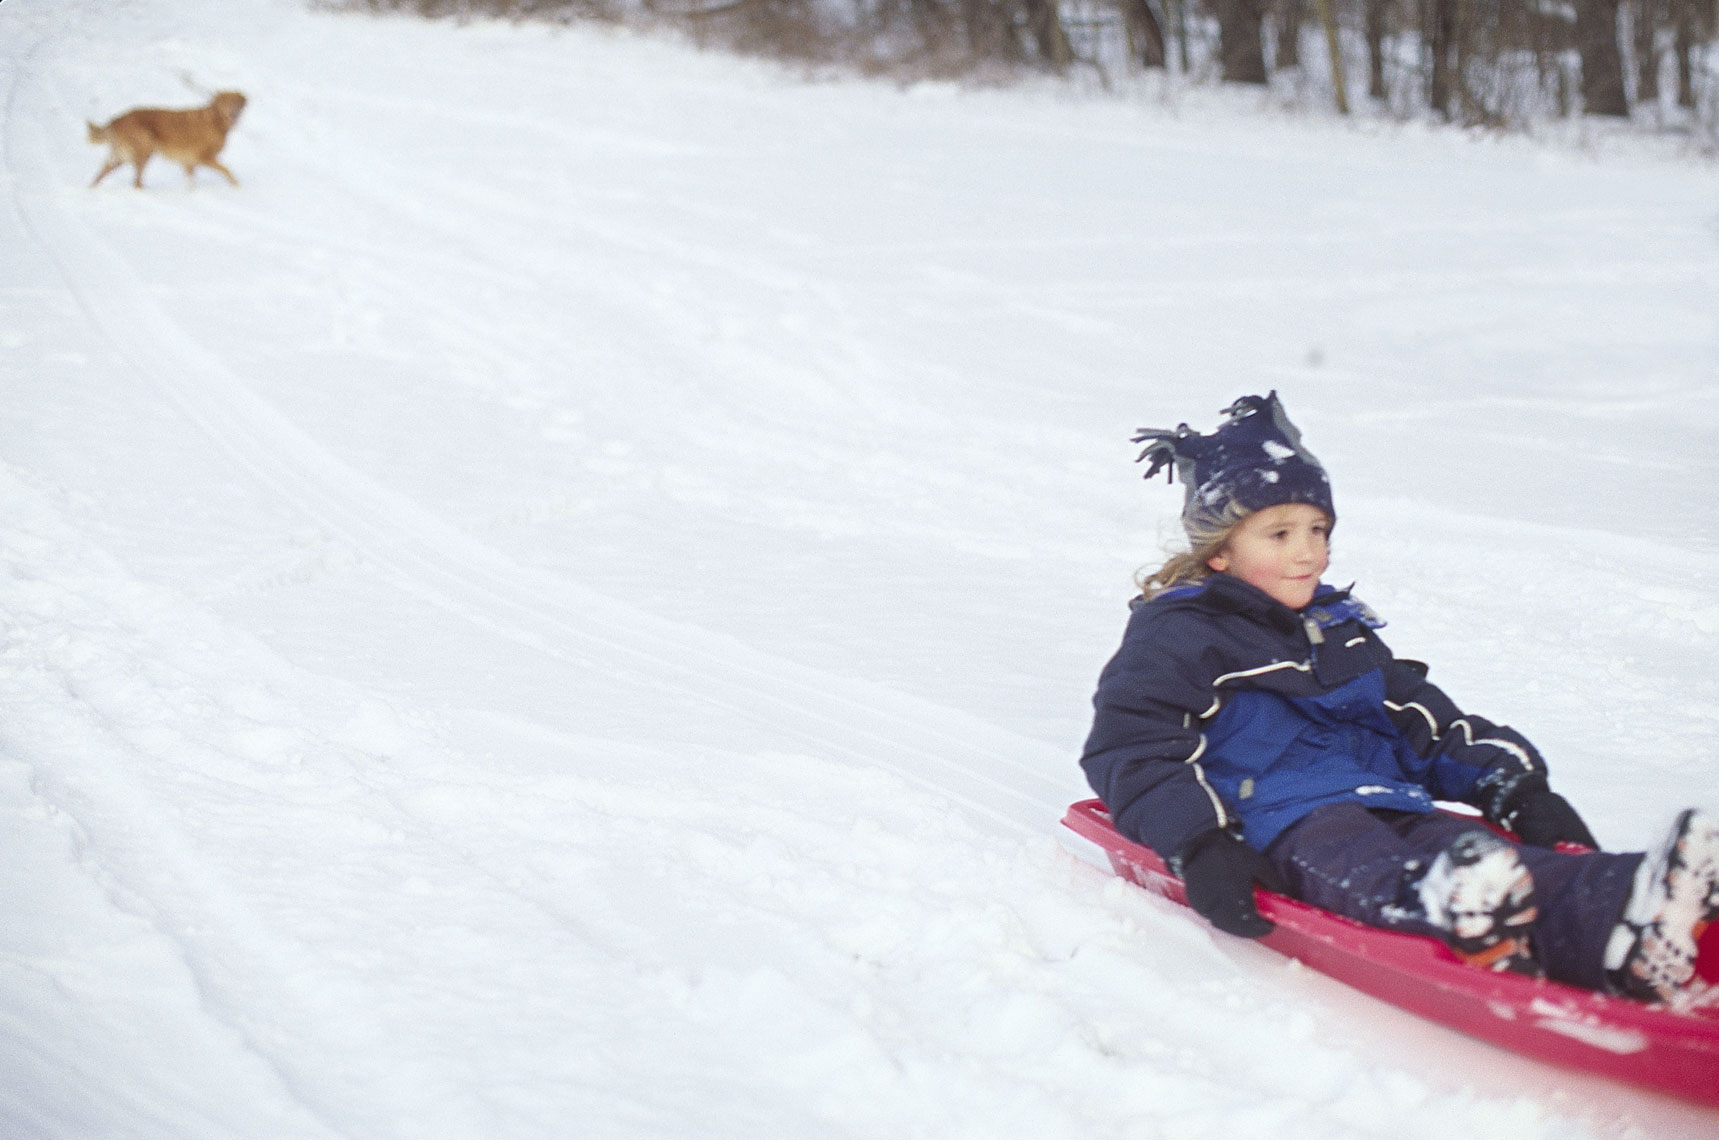 Environmental Lifestyle portrait of boy sledding in winter